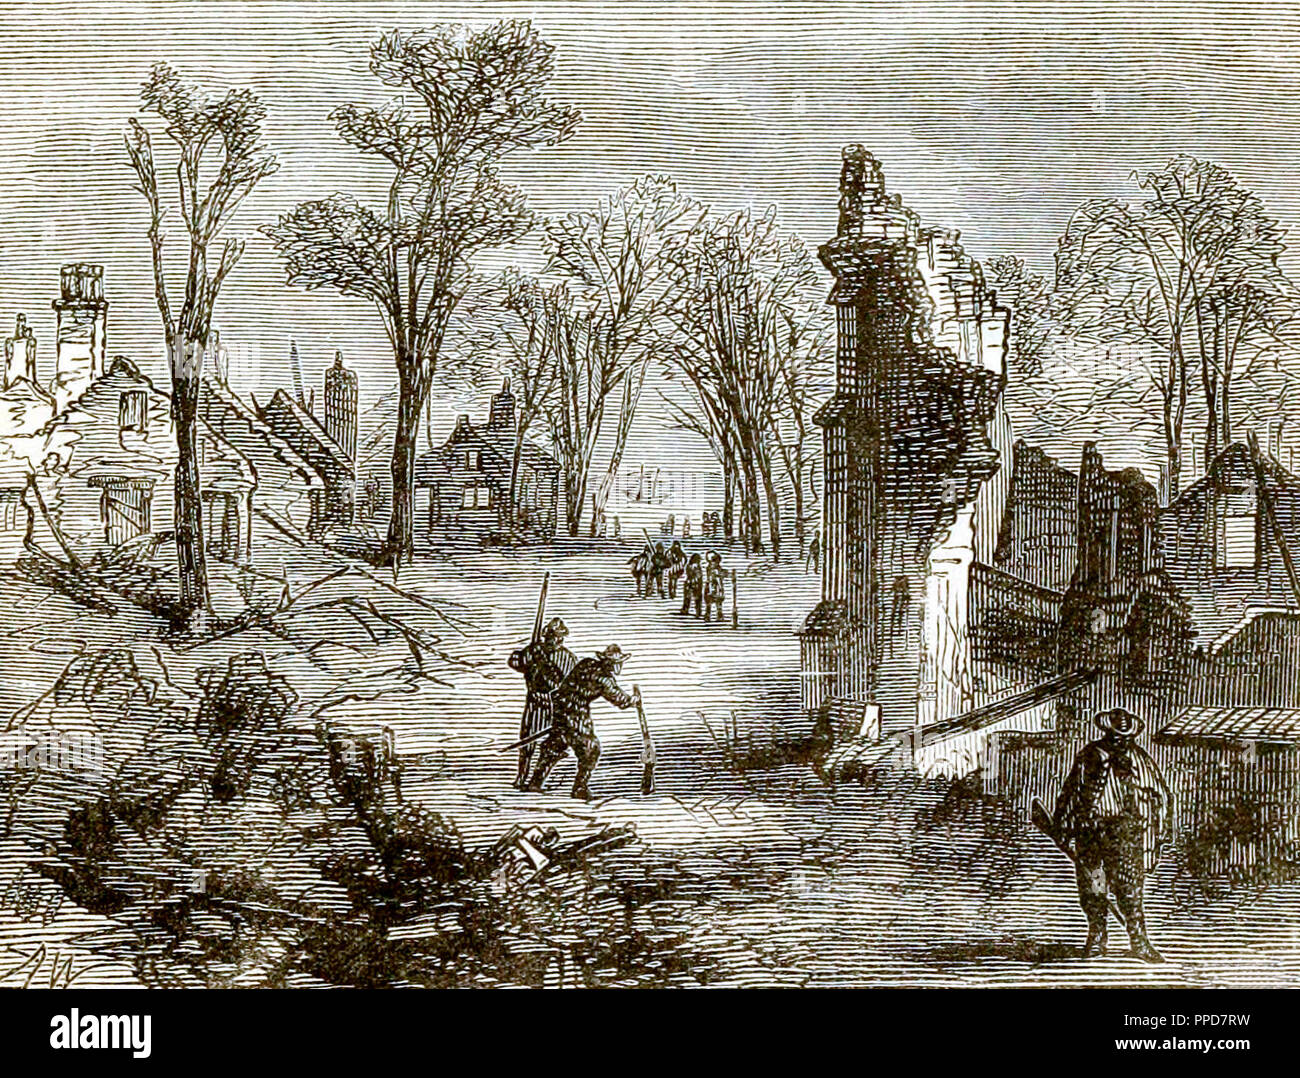 An 1878 depiction of the ruins of Jamestown following its burning during Bacon's Rebellion. - Stock Image